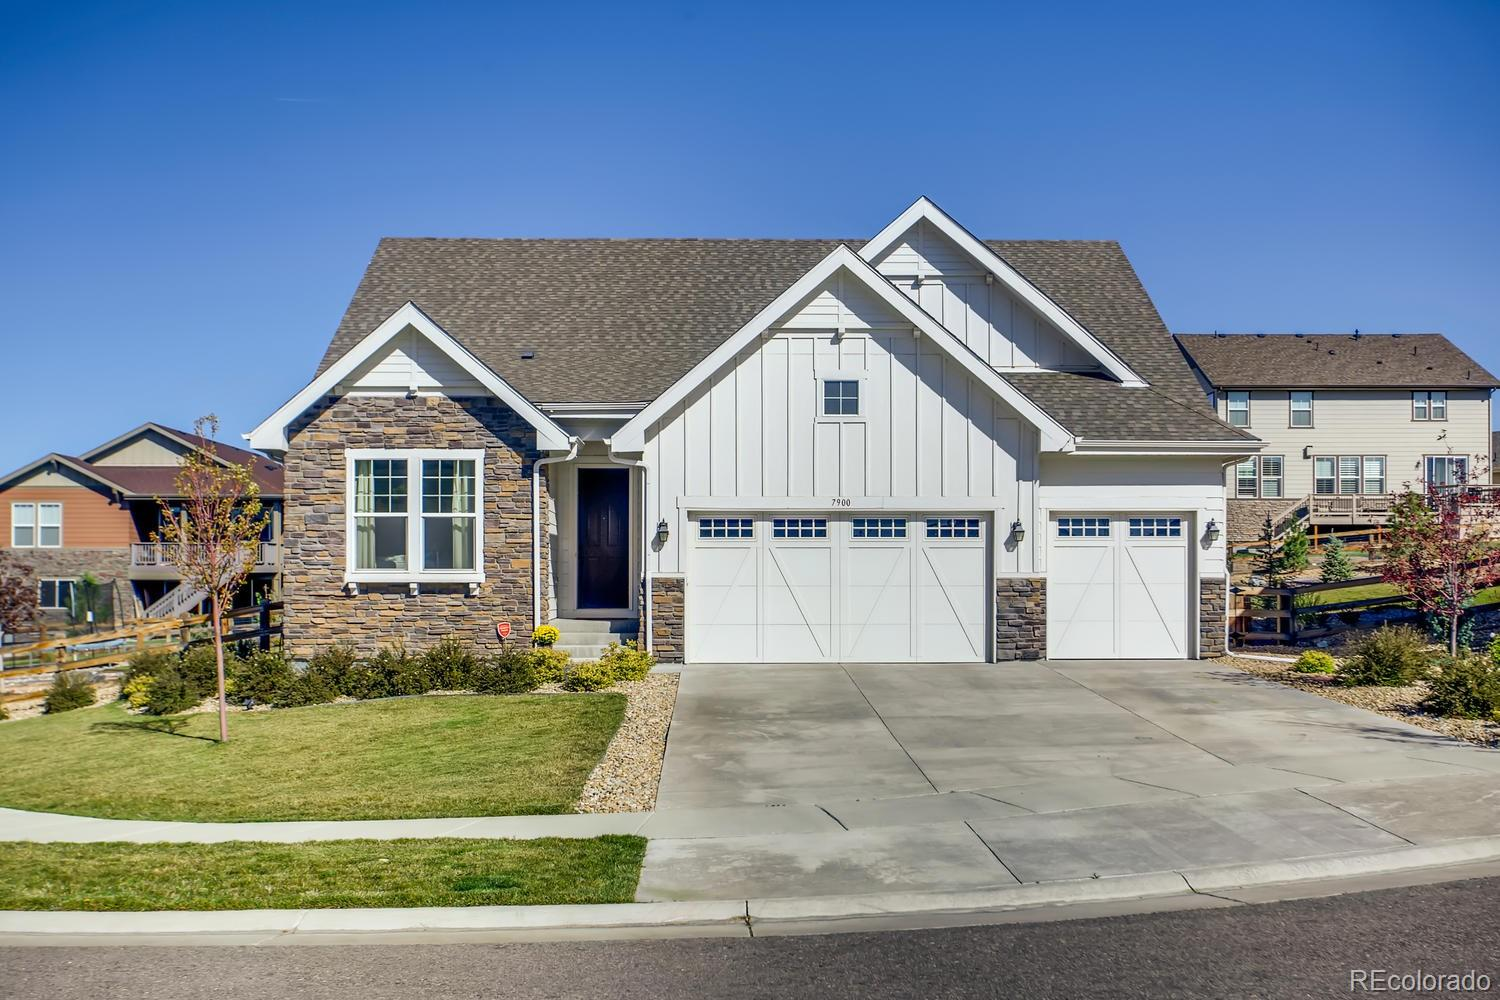 This gorgeous ranch plan in The Estates at Ponderosa Ridge features 3 beds (2 main / 1 bsmt), 3.5 baths, living room, main floor study, kitchen, basement family room, wet bar, 2 + 1 car garage and more. This home lives large!  The finished basement is perfect for guests or teen wanting their own space.  Over $109,000 in upgrades. The open floorplan is perfect for entertaining or family dinners.  Beautiful upgrades and finishes throughout.  The energy efficient furnace, central air and gas fireplace keep this home comfortable all year long. Enjoy backyard parties on the patio in the spacious backyard.  The many windows on both the main and basement levels allow natural sunlight to cascade in, keeping this home bright and cheerful.  Meticulously maintained - pride of ownership shines throughout this beautiful home.  Close to dining, shopping, entertainment and other amenities.  Easy commute to Southlands, Lone Tree, the DTC and beyond and a short drive to Aurora Reservoir.  Don't miss your opportunity. Welcome Home!